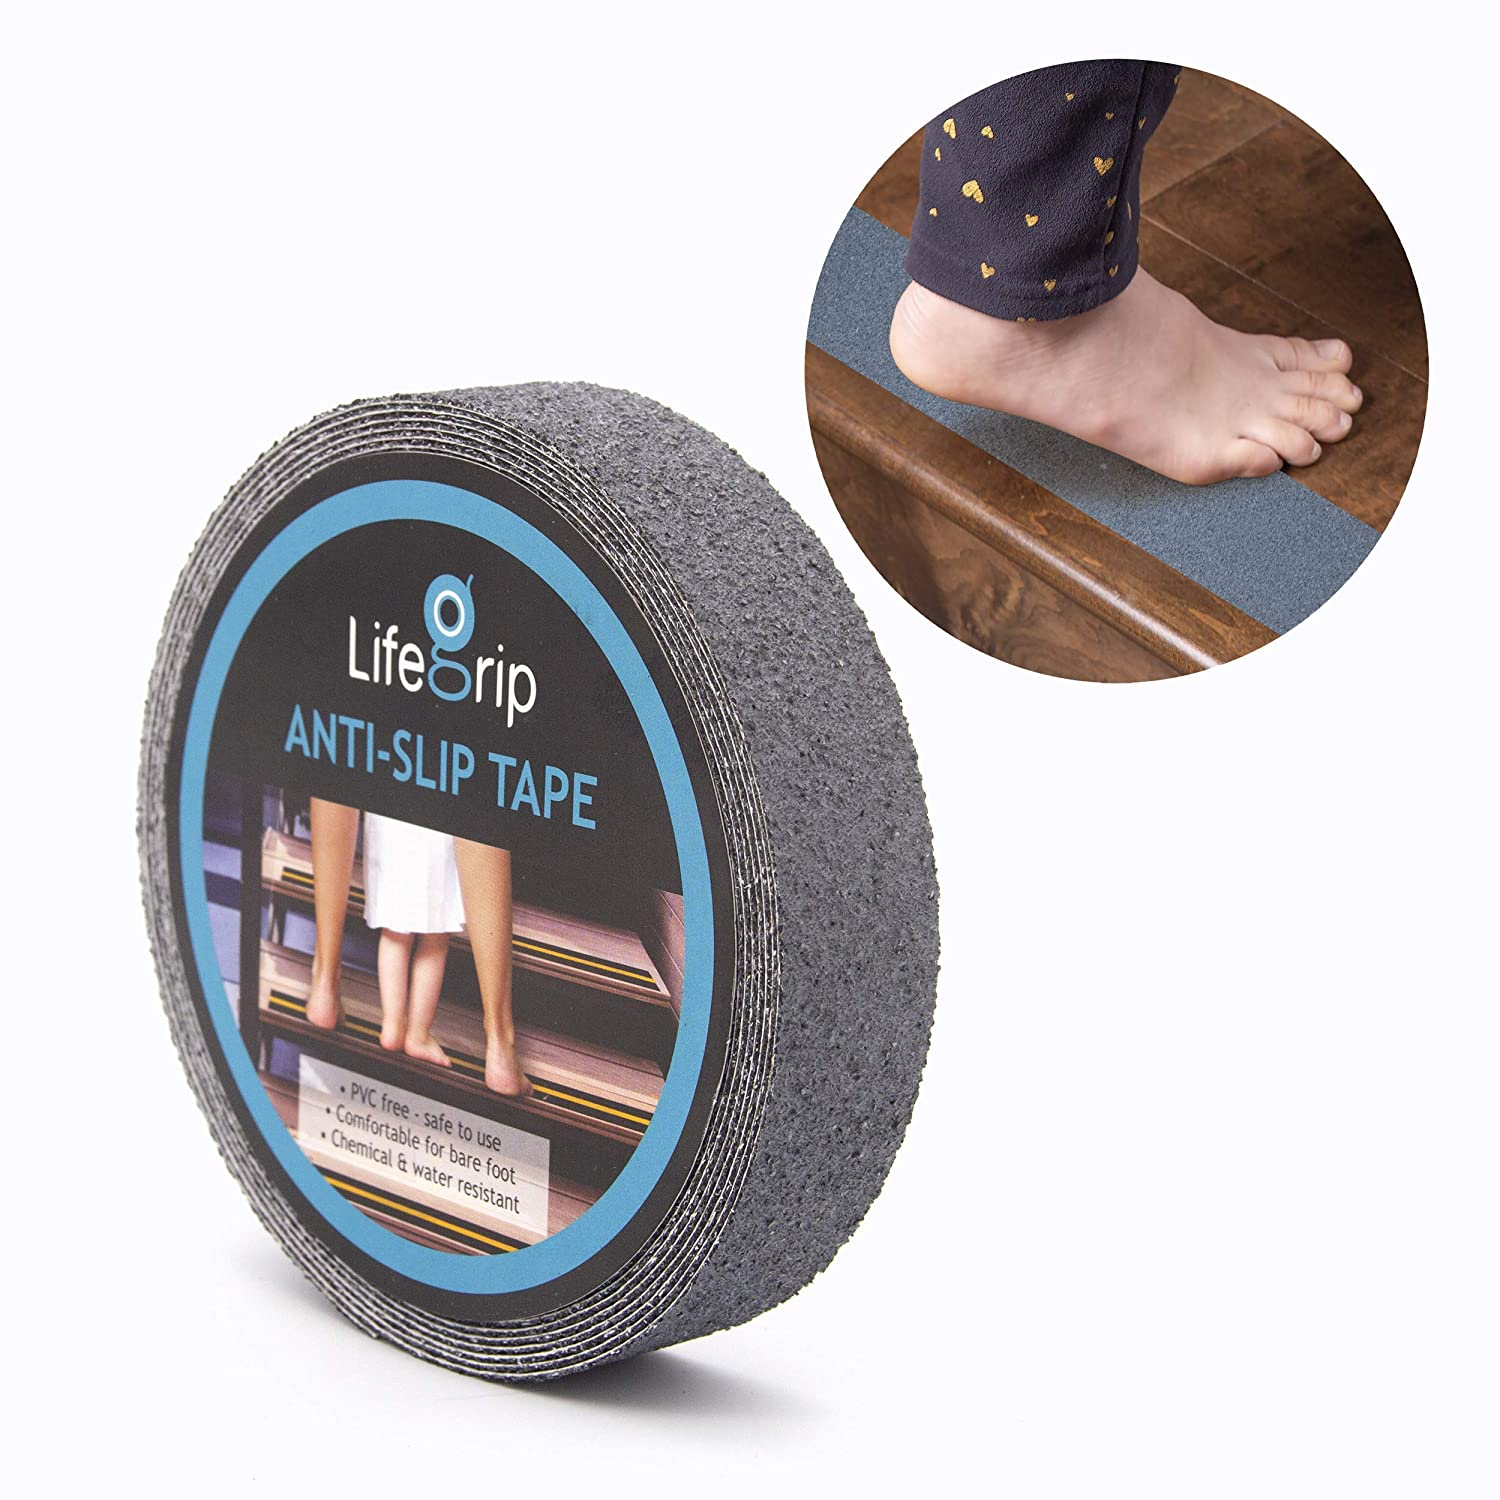 "LifeGrip Anti Slip Safety Tape, Non Slip Stair Tread, Textured Rubber Surface, Comfortable for Barefoot, Grey (1"" X 30')"